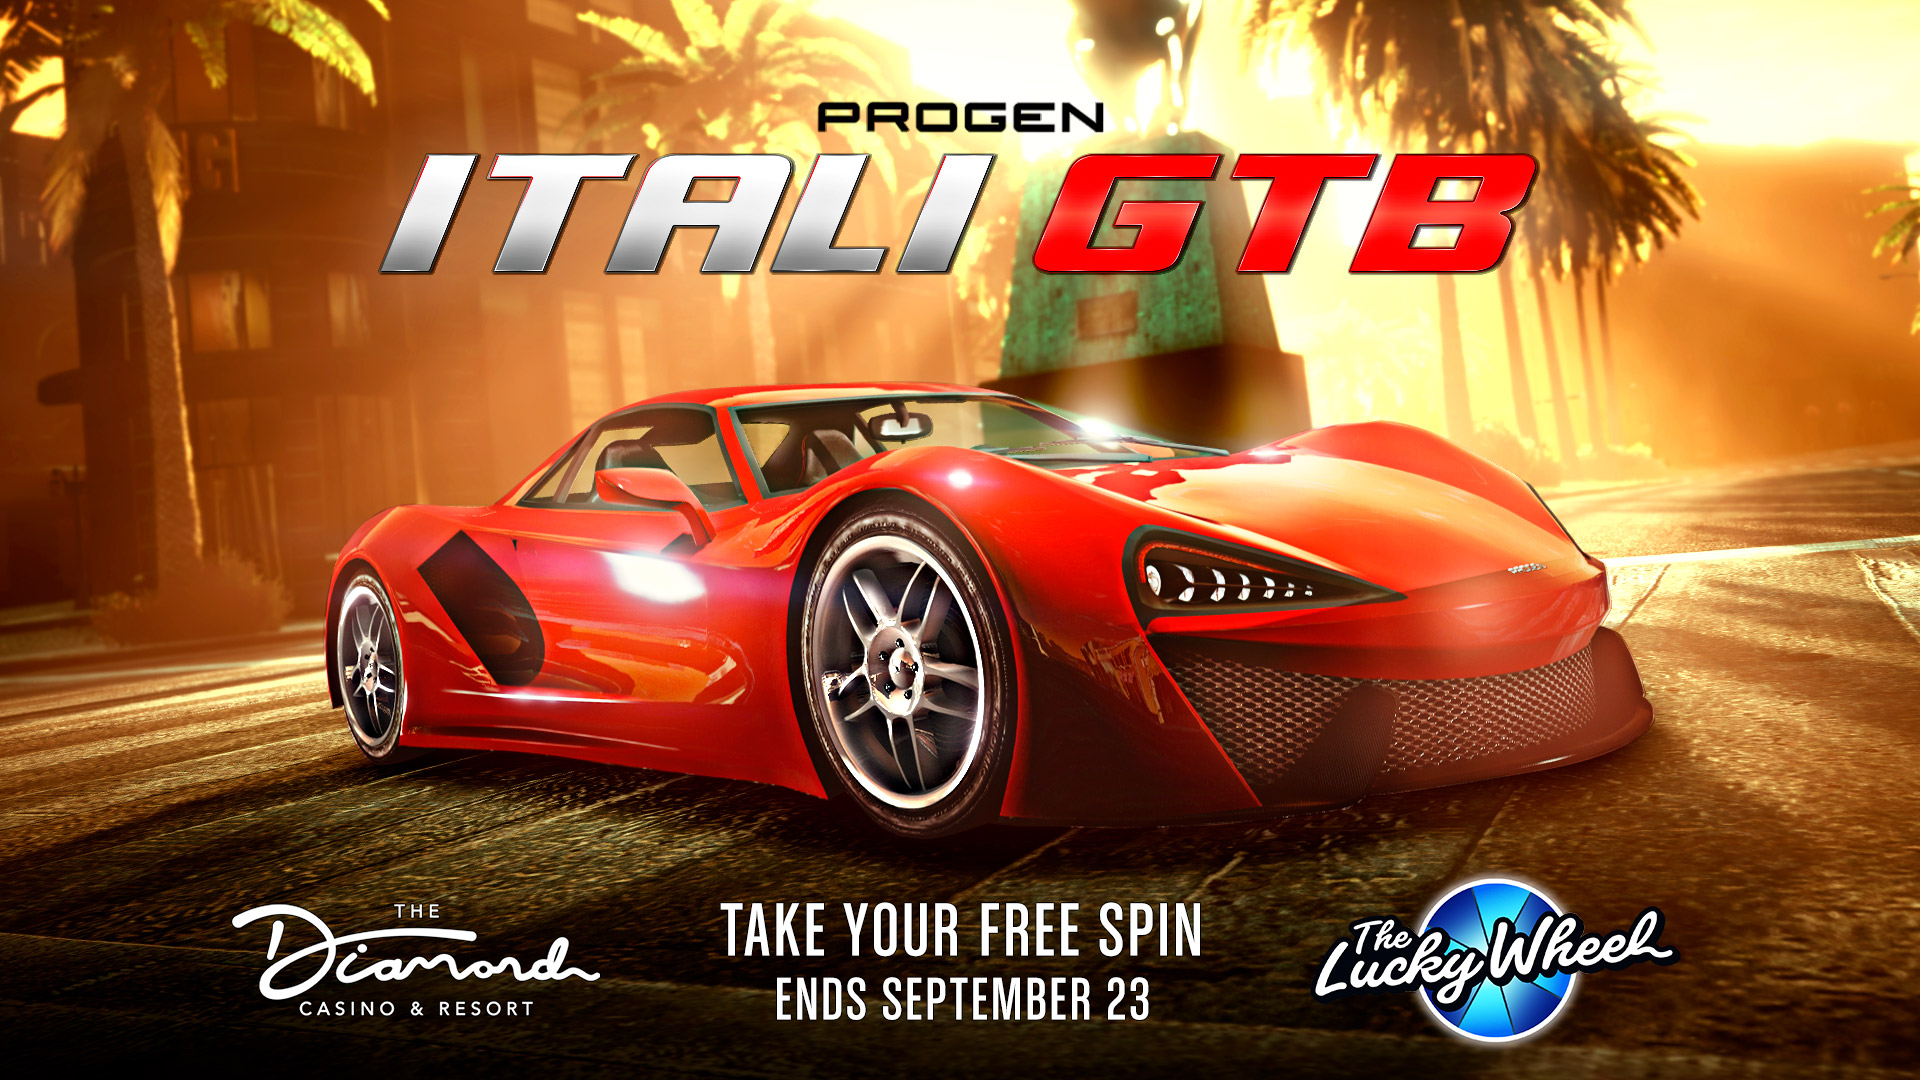 GTA Online Podium Diamond Casino Progen Itali GTB